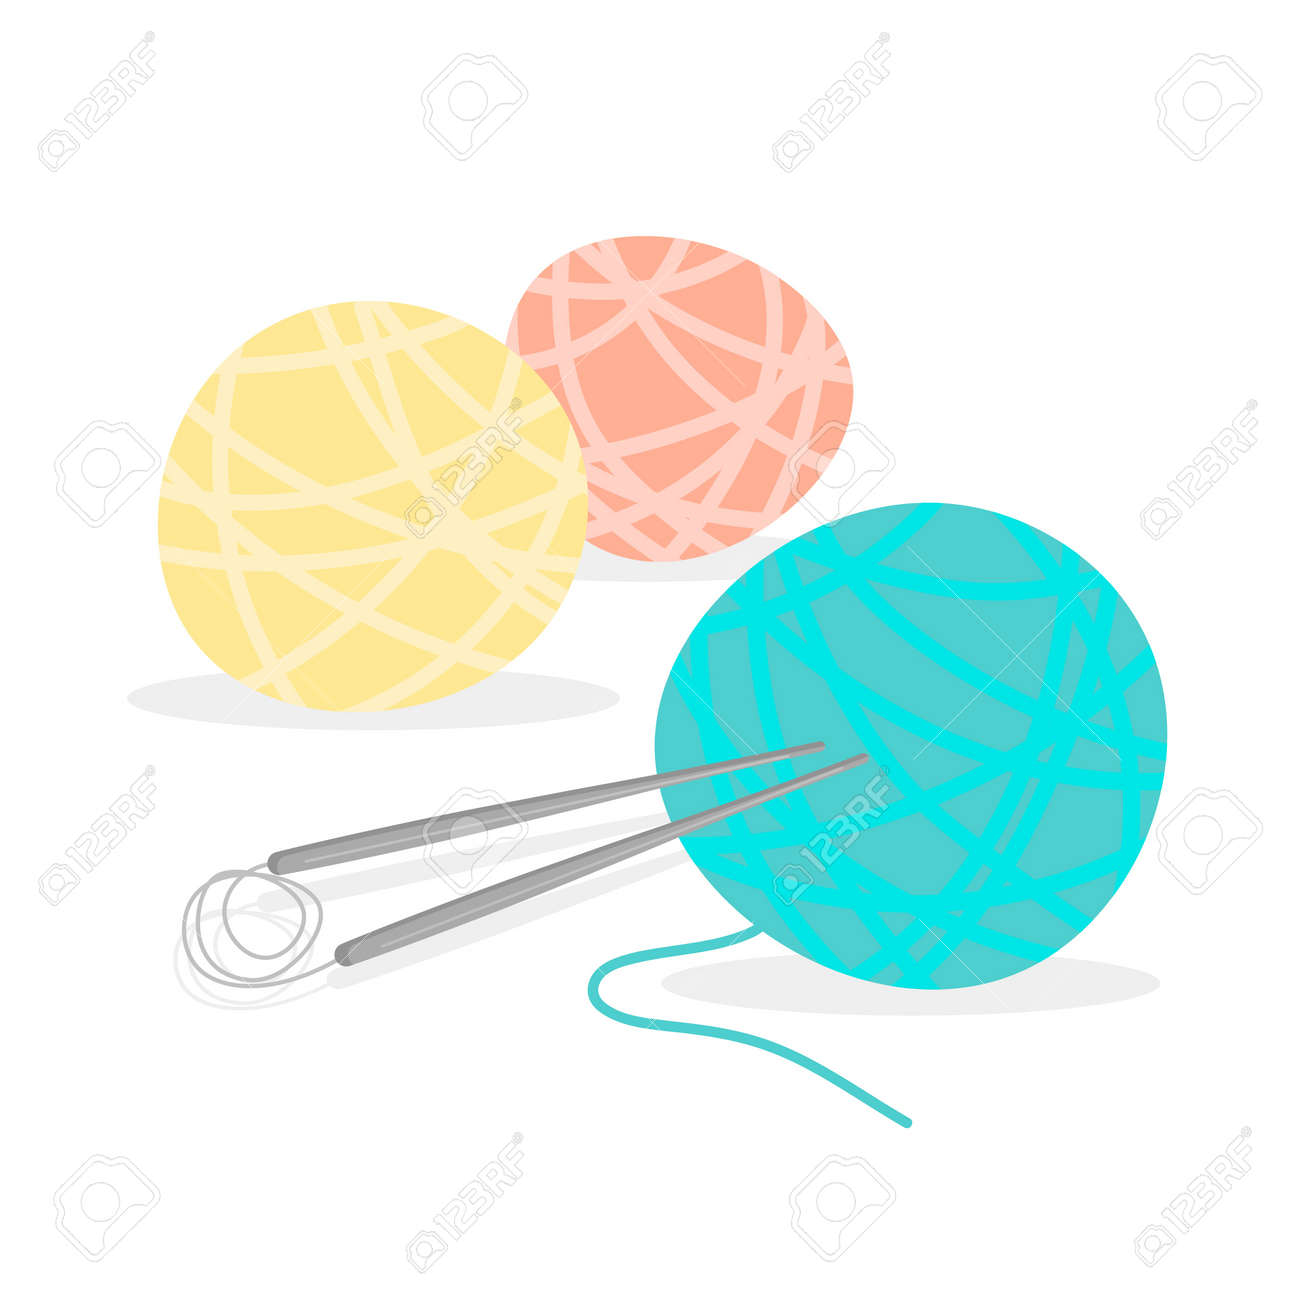 Different colors of knitting thread with needles. Balls of yarn. Tools for knitwork. Female hobby. Vector illustration isolated on white background. - 167865632